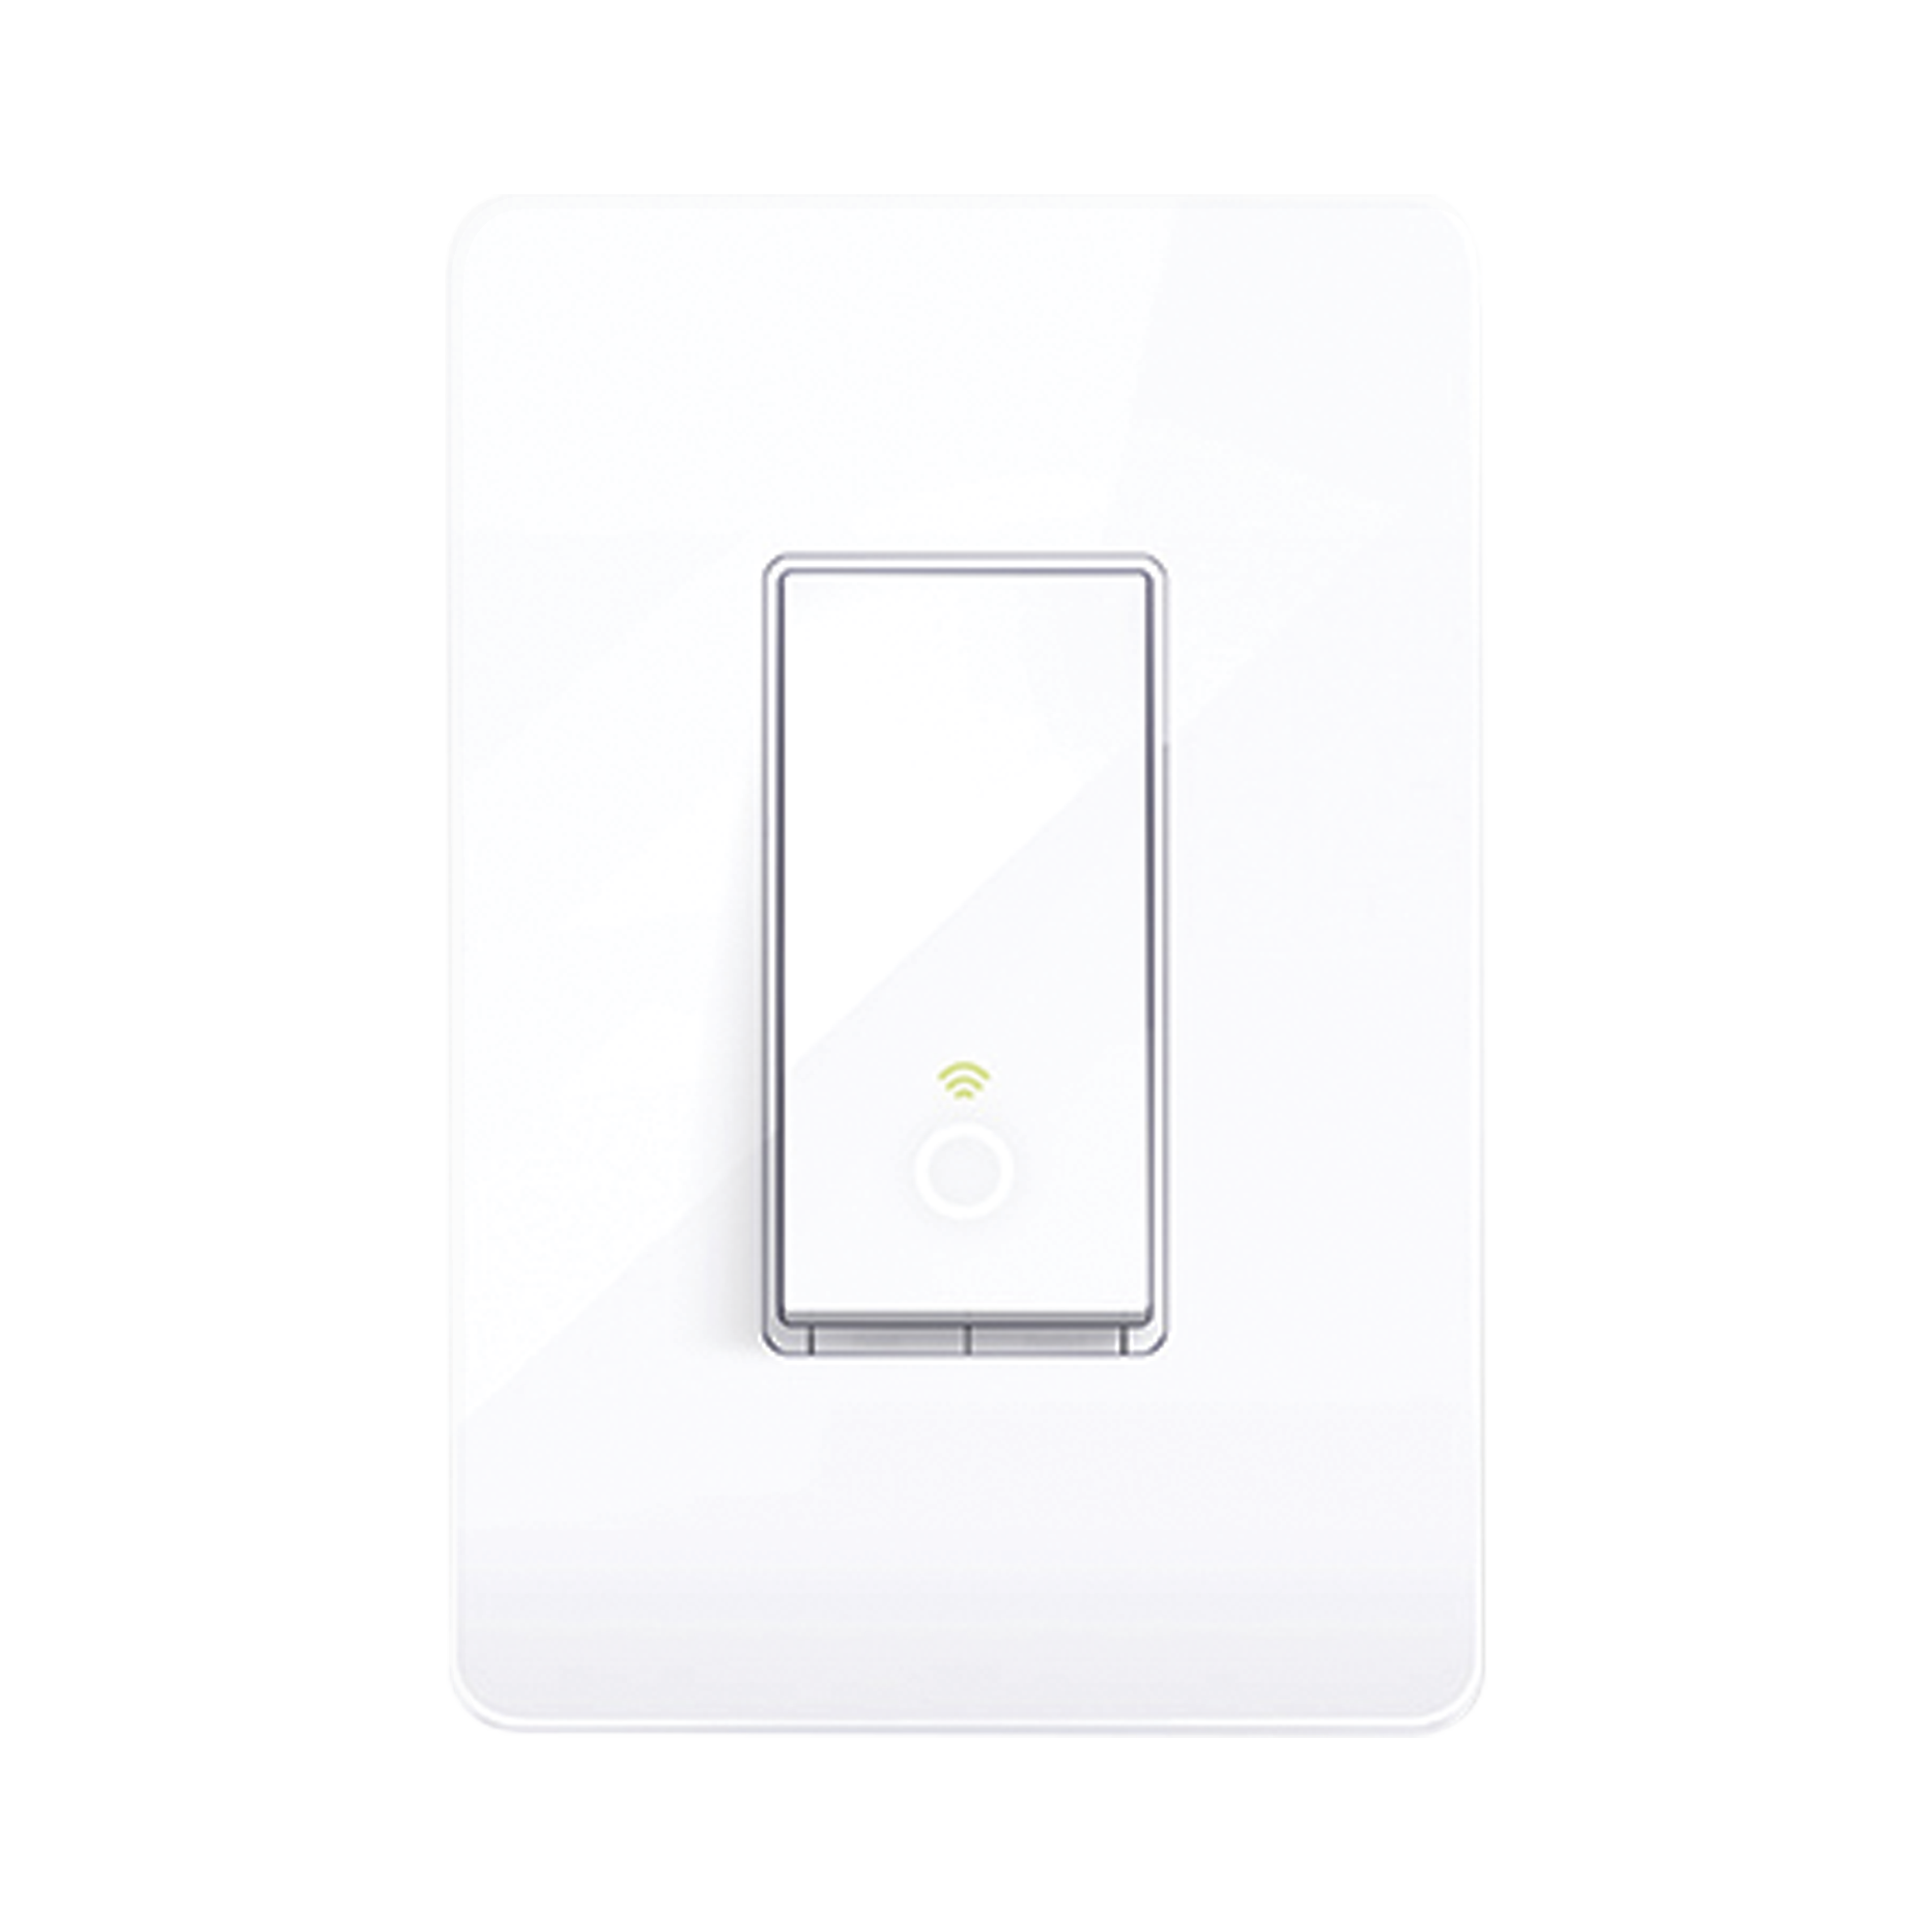 Interruptor Inteligente Wi-Fi, 100 - 120V~, 50/60Hz, 15.0A, compatible con Amazon Alexa y Google Assistant, color blanco.